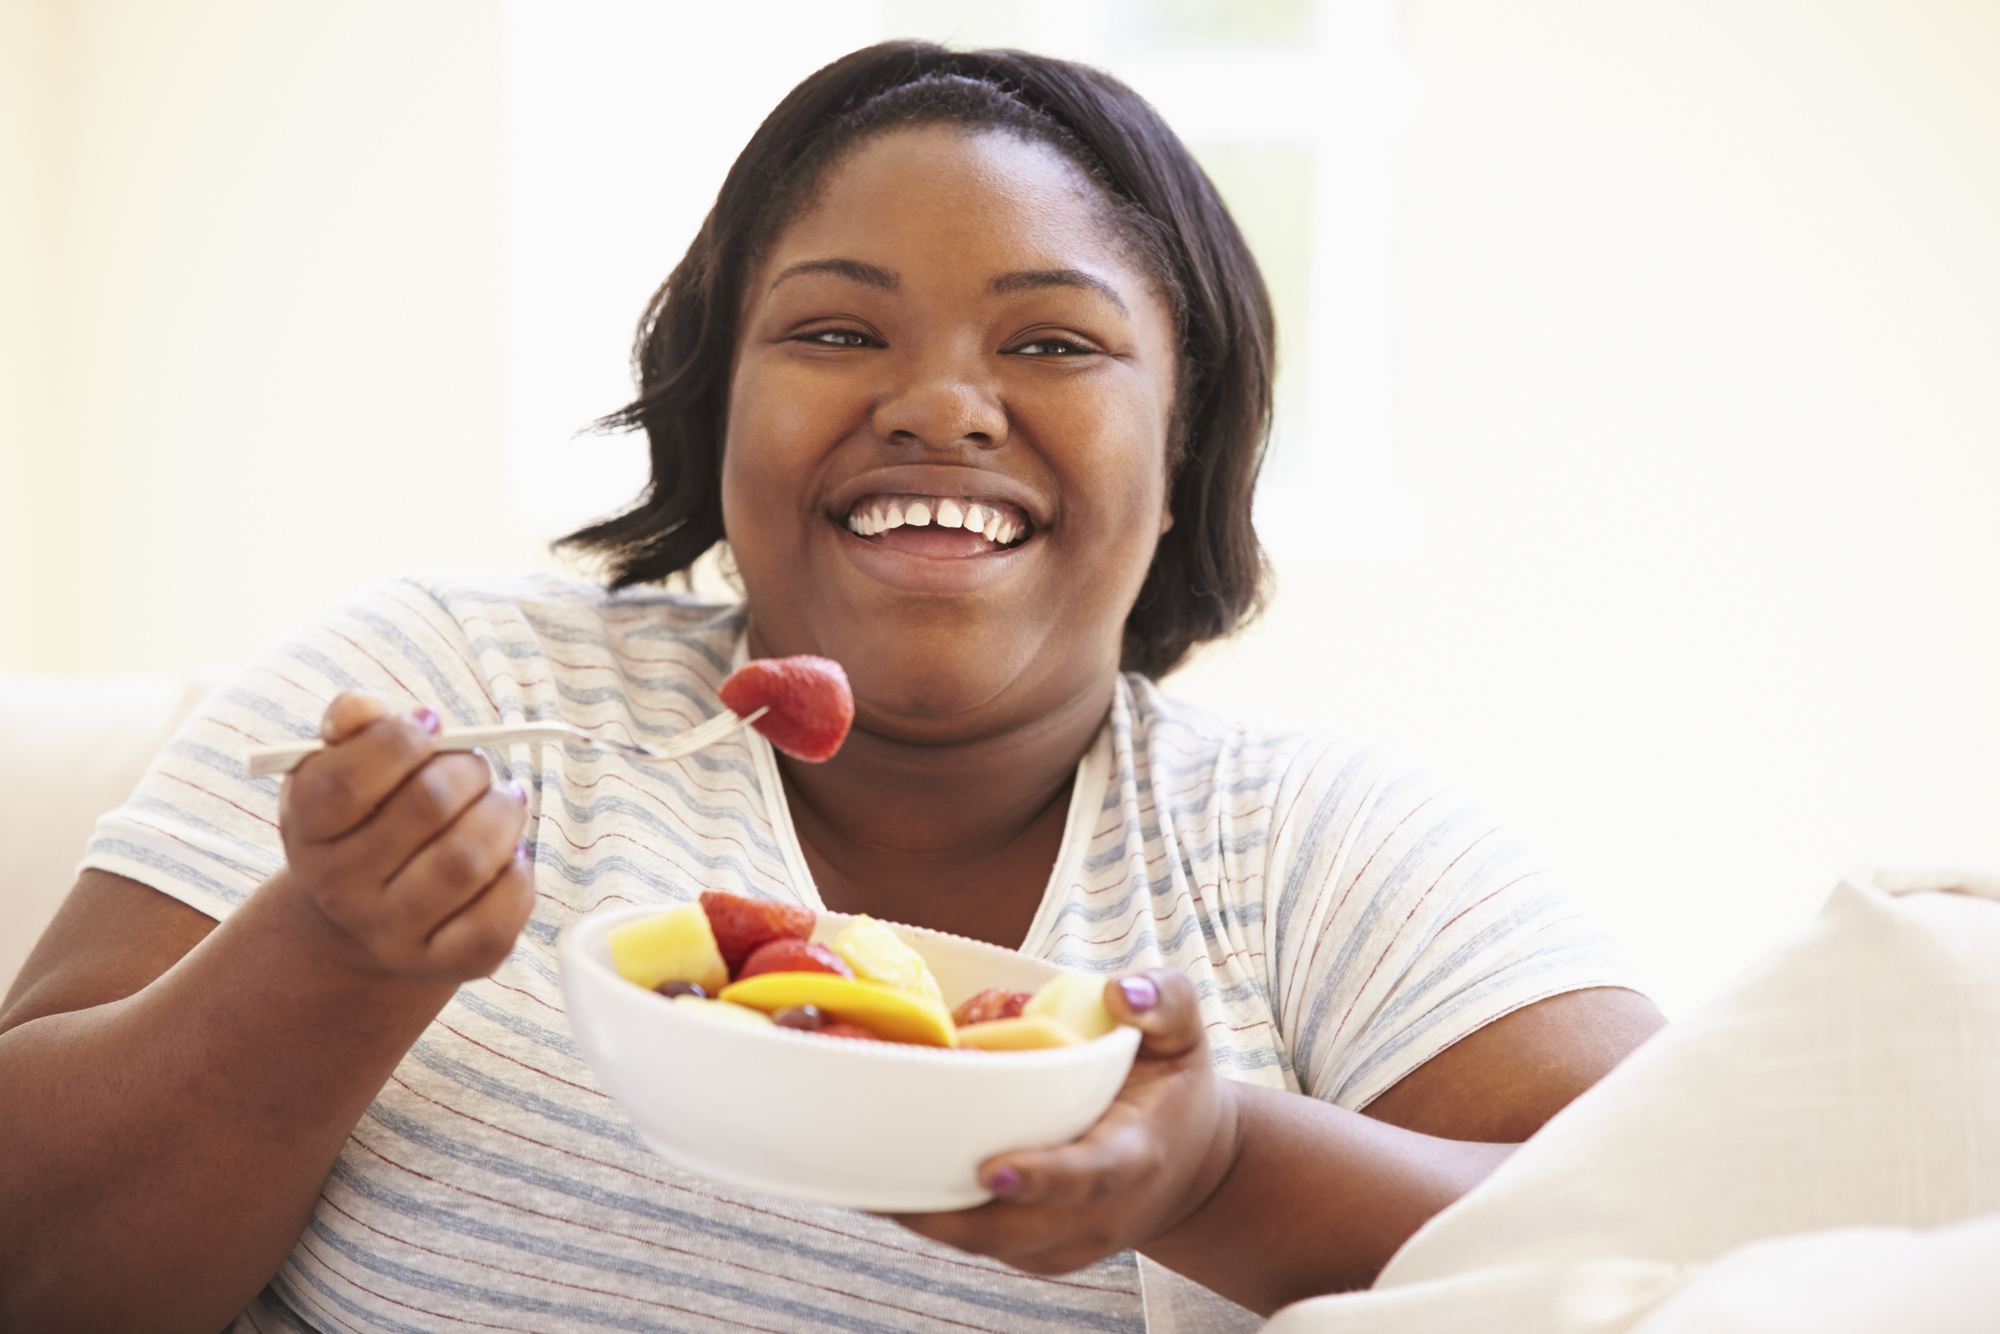 A woman eats a bowl of fruit while sitting on a couch, satisfying her cravings